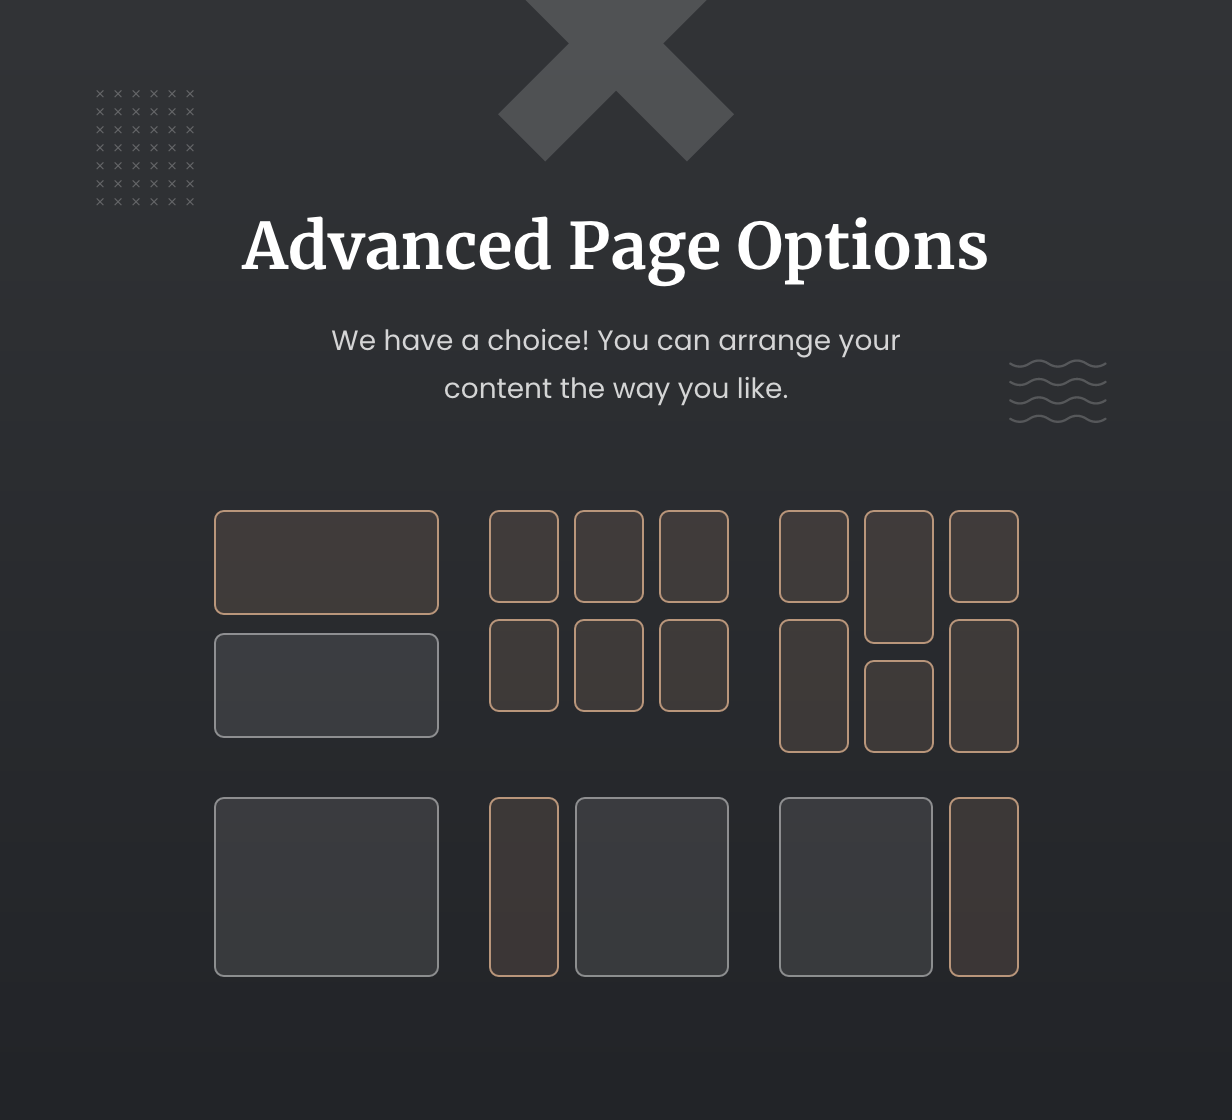 Gase Page Options